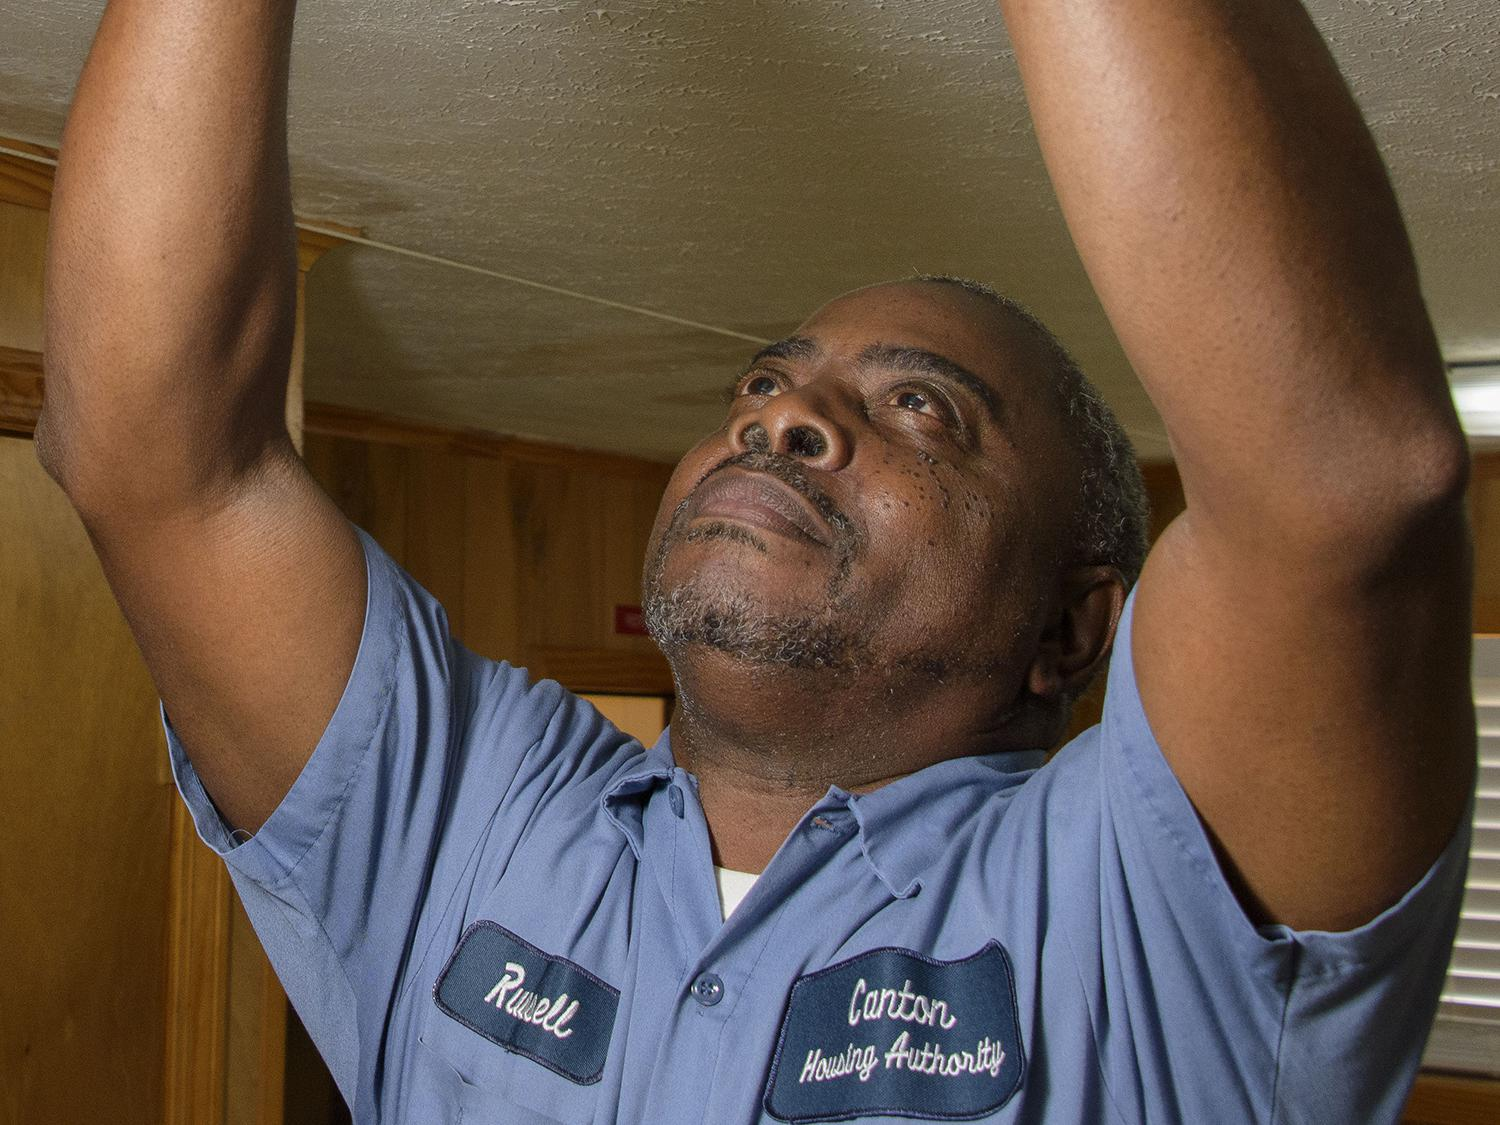 Russell Carroll, a maintenance supervisor with the Canton Housing Authority in Canton, Mississippi, checks batteries in a smoke detector in one of the housing units he services. Carroll participated in a Healthy Homes Initiative training and shares information with his colleagues and clients to help them improve their environments. (File photo by MSU Extension Service/Kevin Hudson)